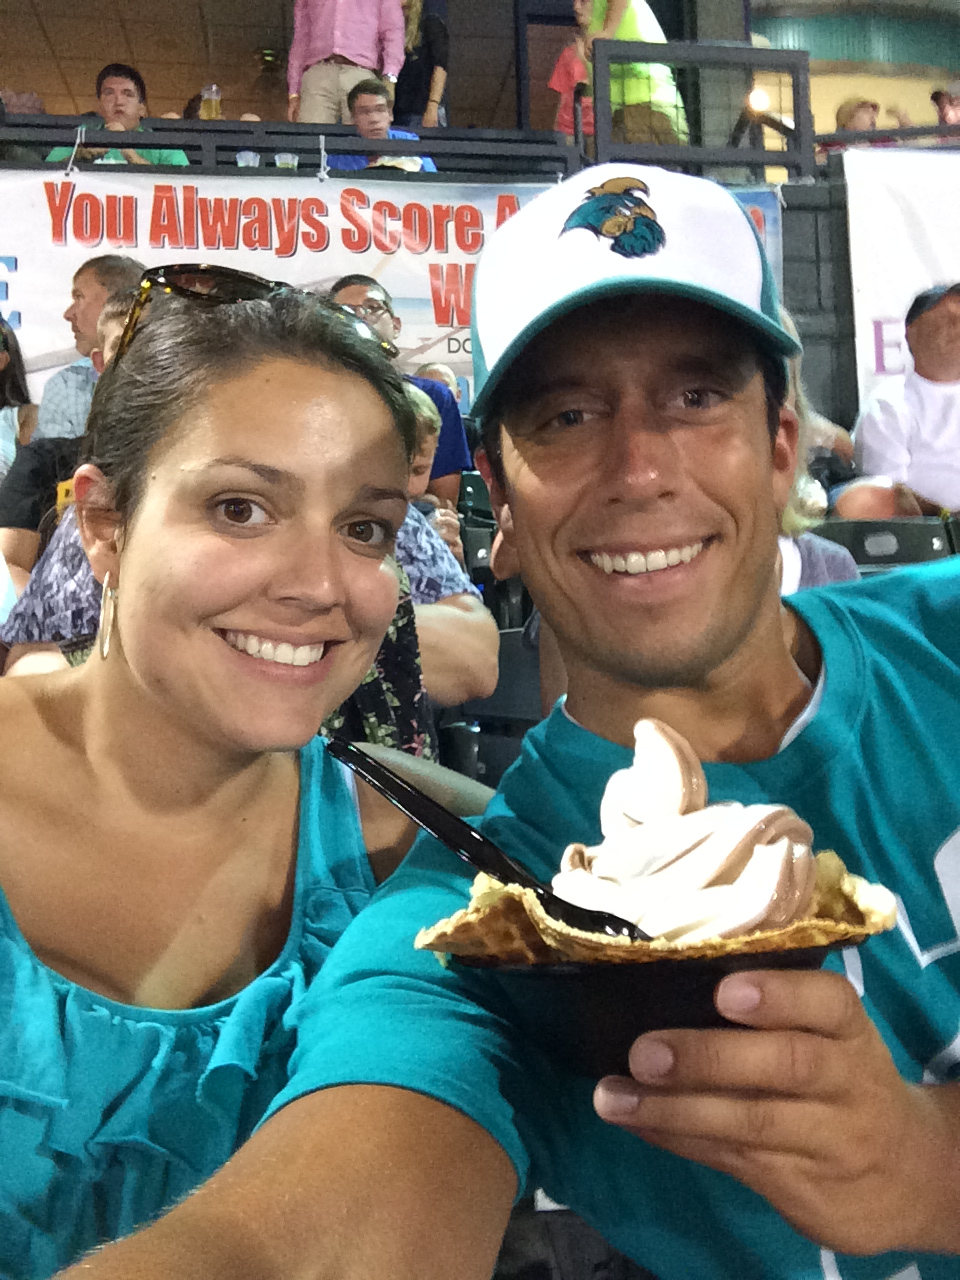 This past Thursday at the Pelicans game, with some help from Sidney, I ate this delicious ice cream dish. The waffle bowl was made right in front of my own eyes.